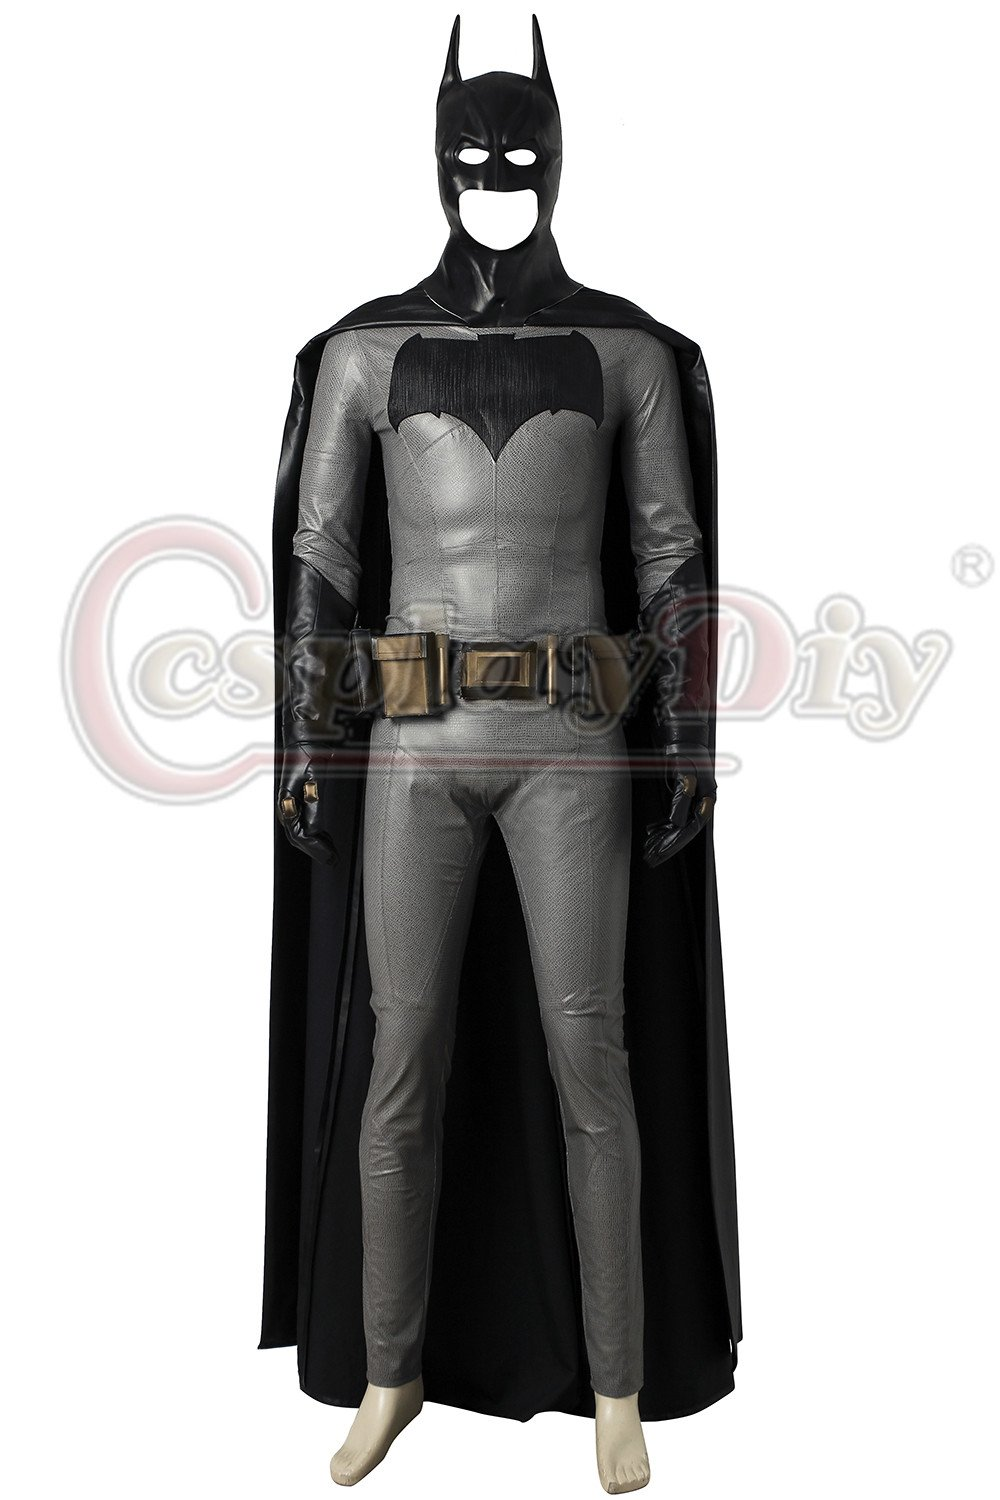 Batman v Superman: Dawn of Justice Batman Cosplay Costume Adult Batman Party Cosplay Costume